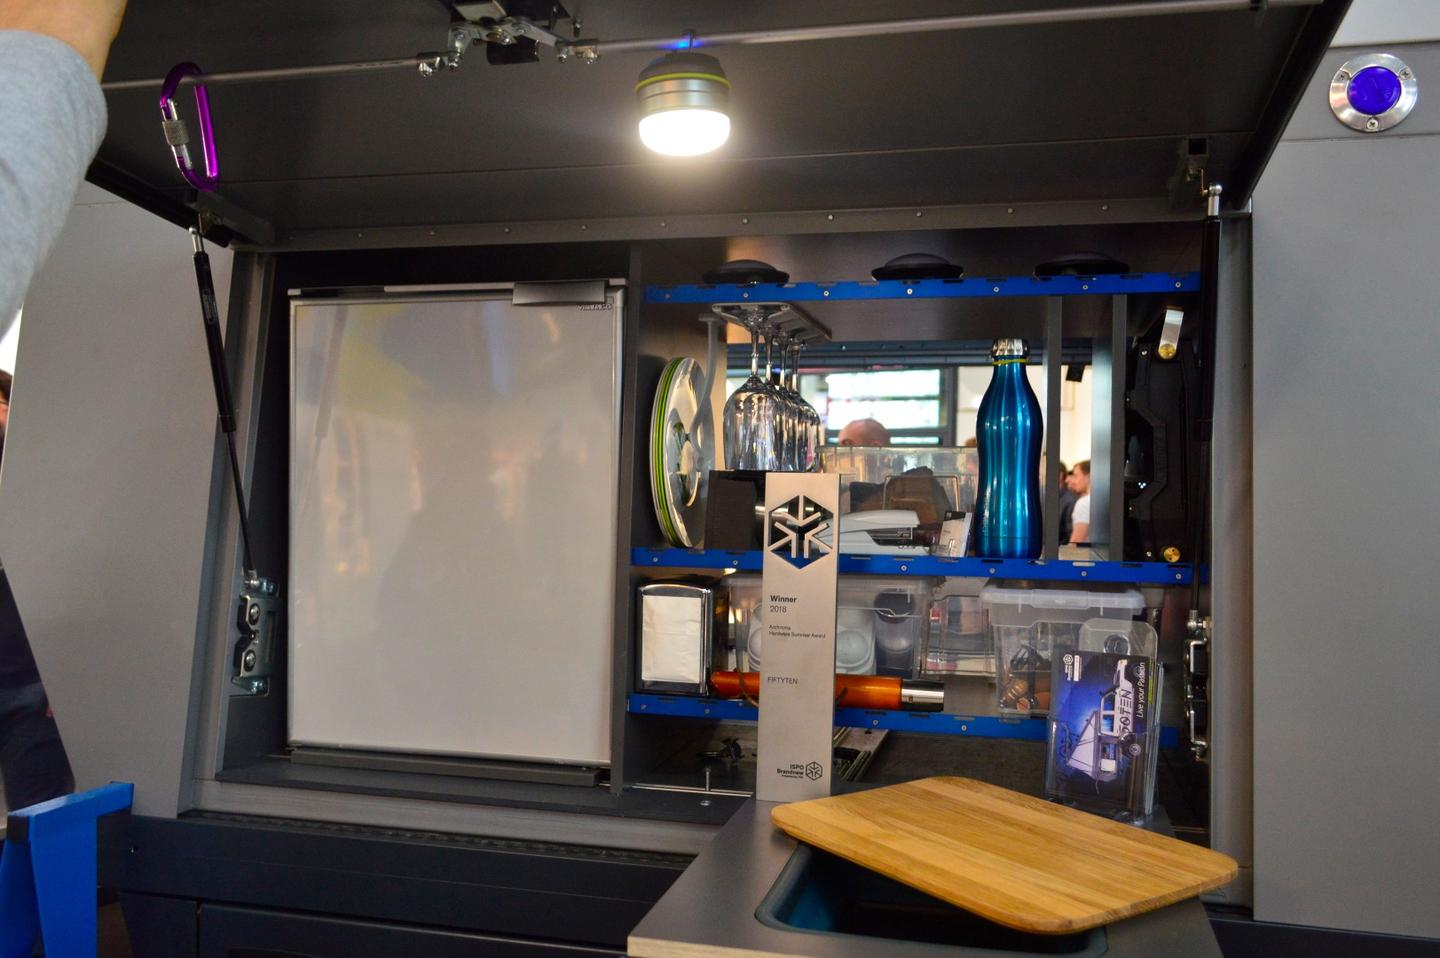 At ISPO, Fiftyten showed a camper truck configuration with slide-out countertop, sink and refrigerator